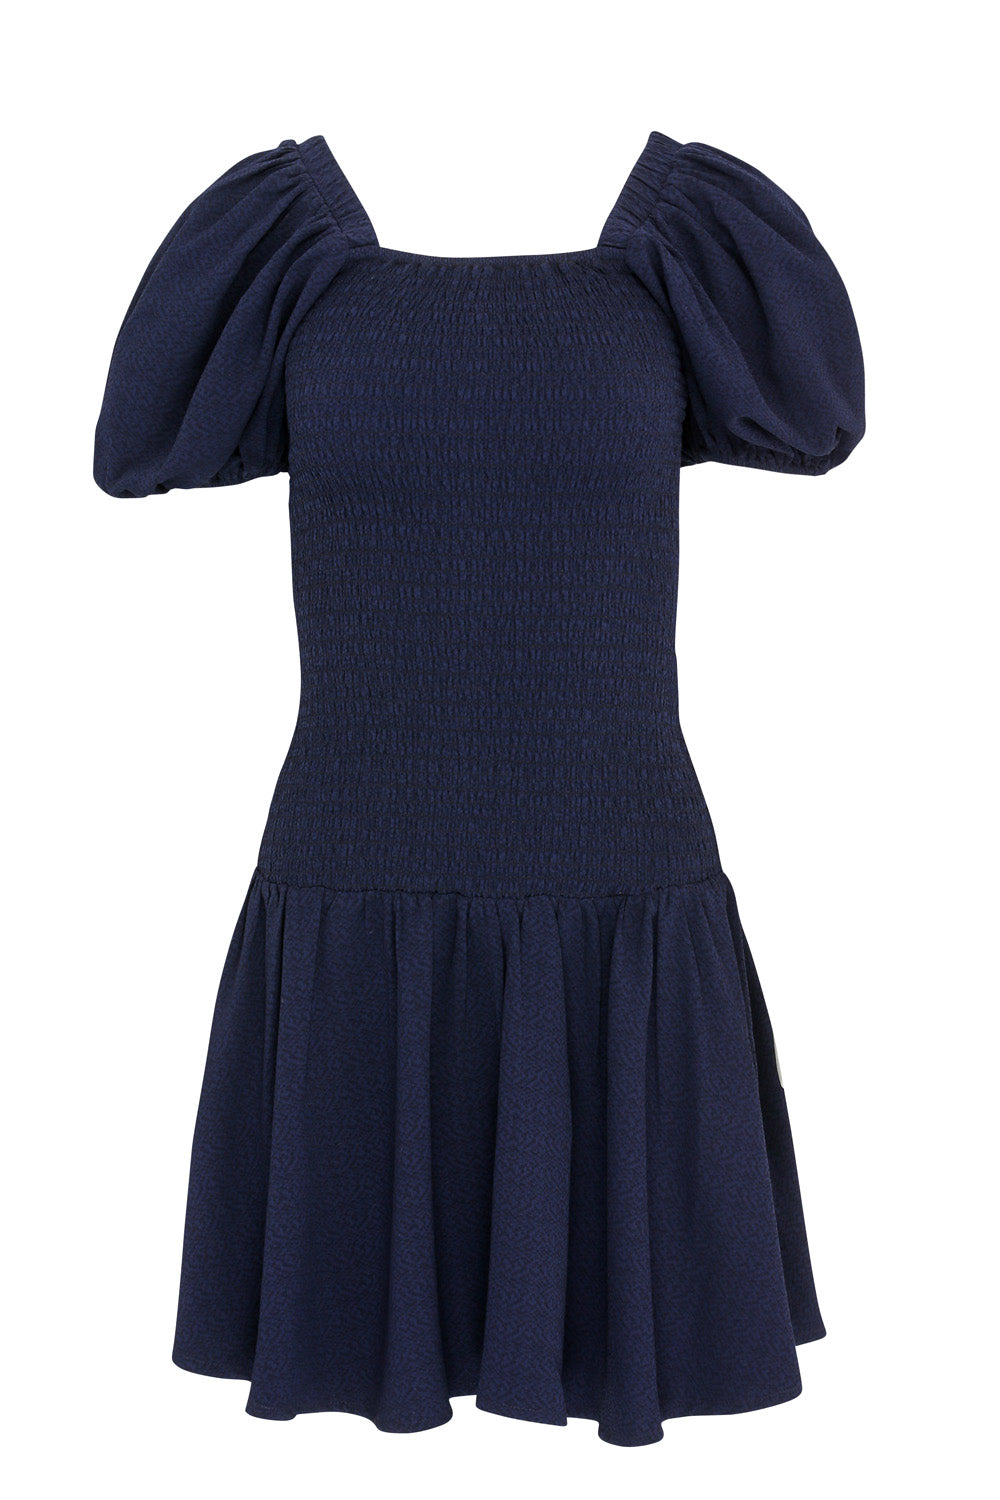 Puglia Navy dress - Family Affairs